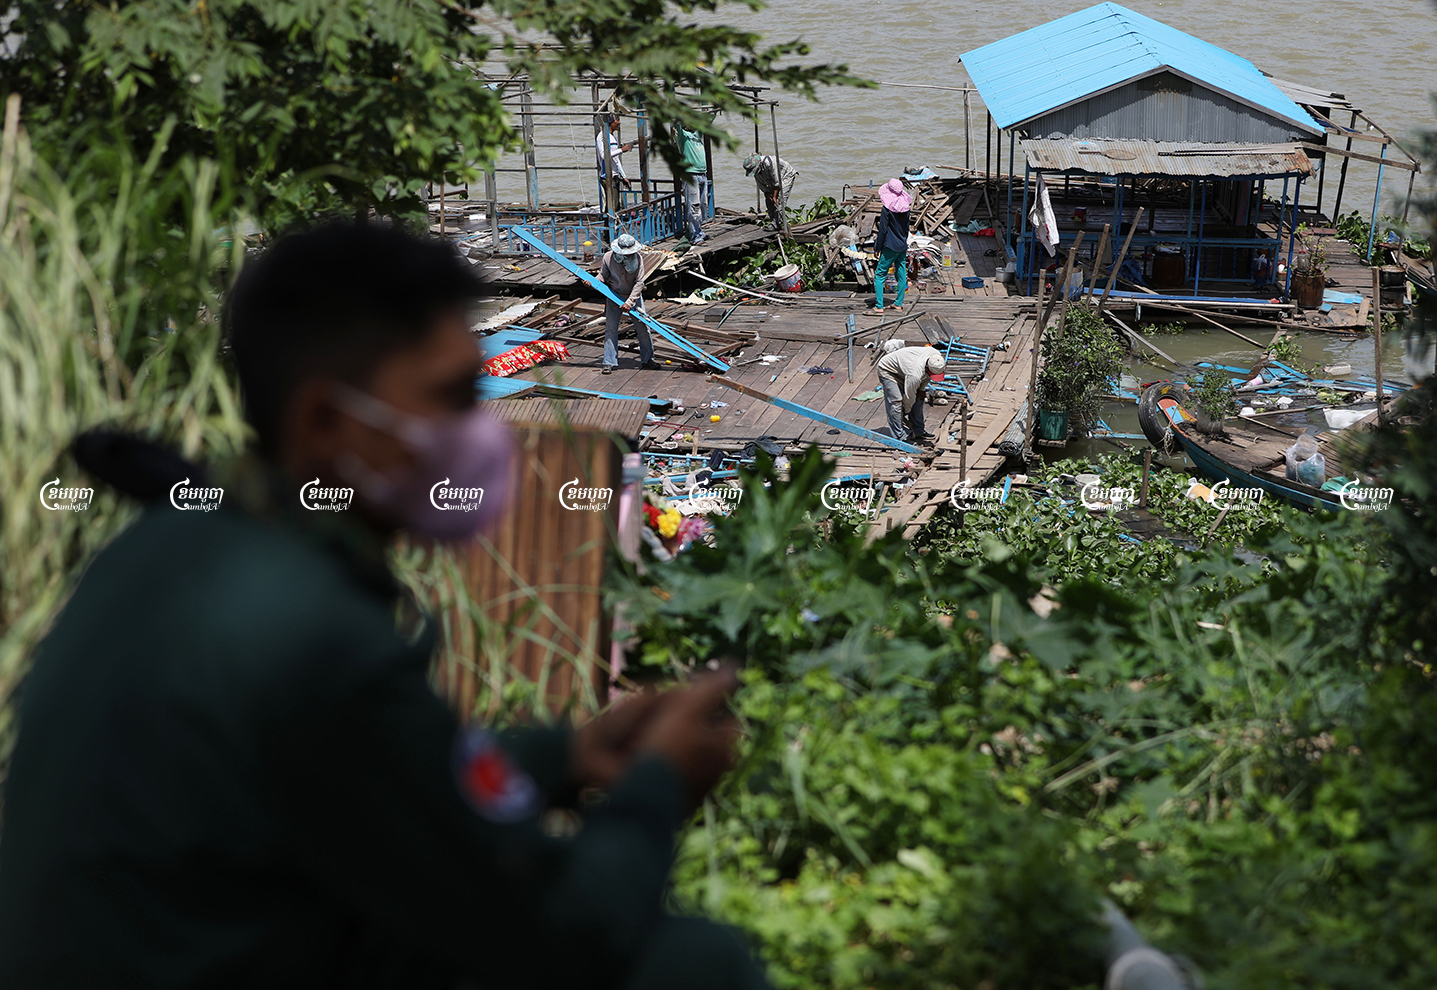 A police officer monitors ethnic Vietnamese people while they move their floating house in Chroy Changvar district, June 14, 2021. CamboJA/ Pring Samrang